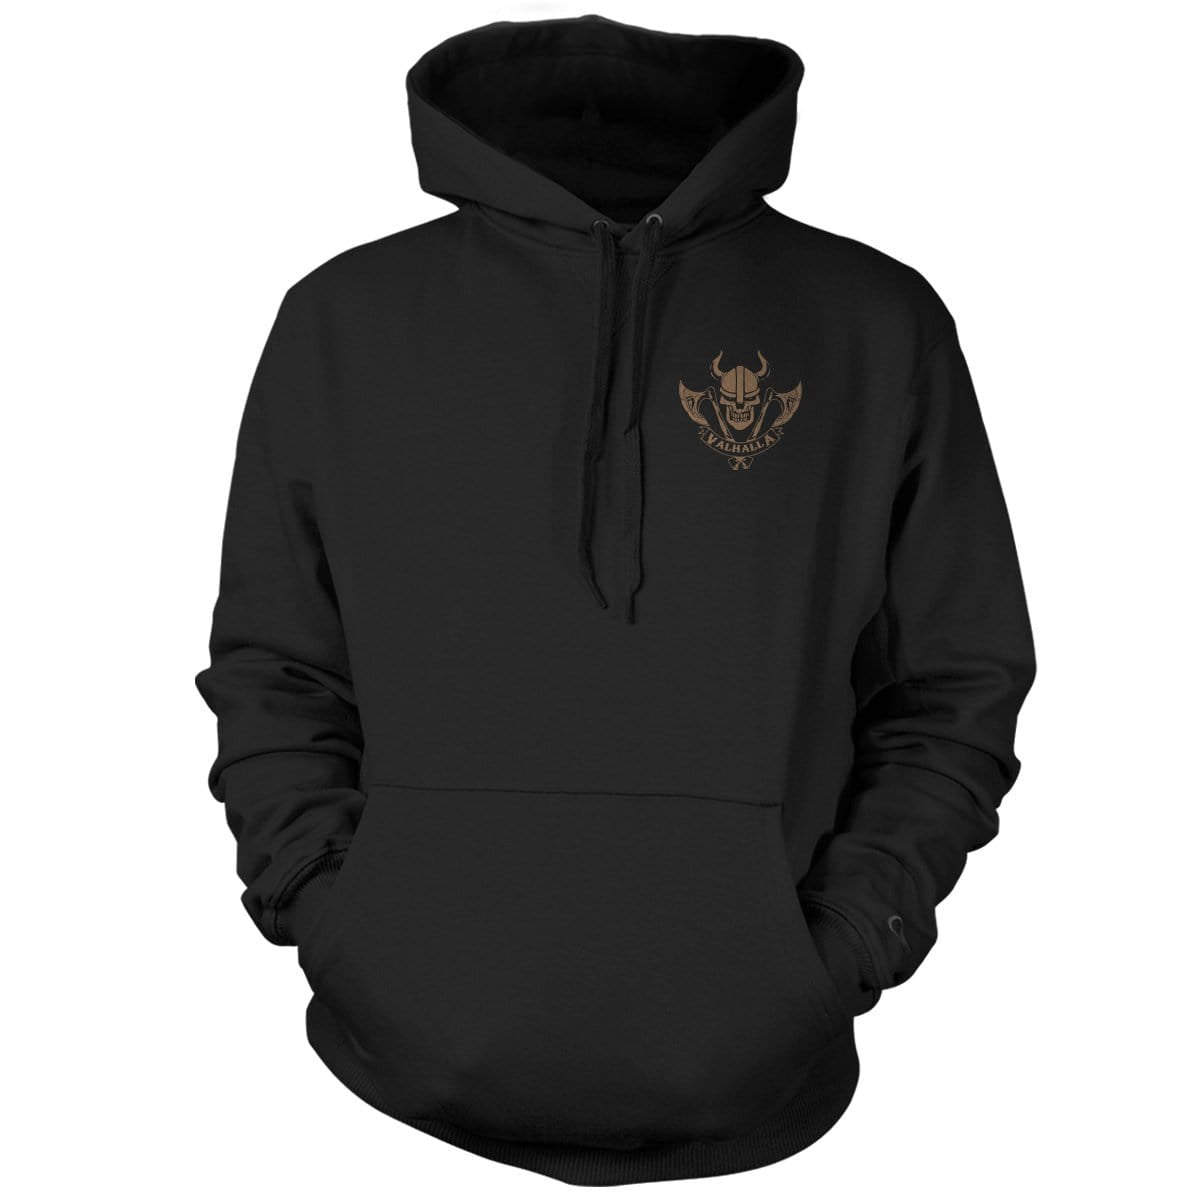 PHUMC Valhalla Chapter Hoodie - Pipe Hitters Union